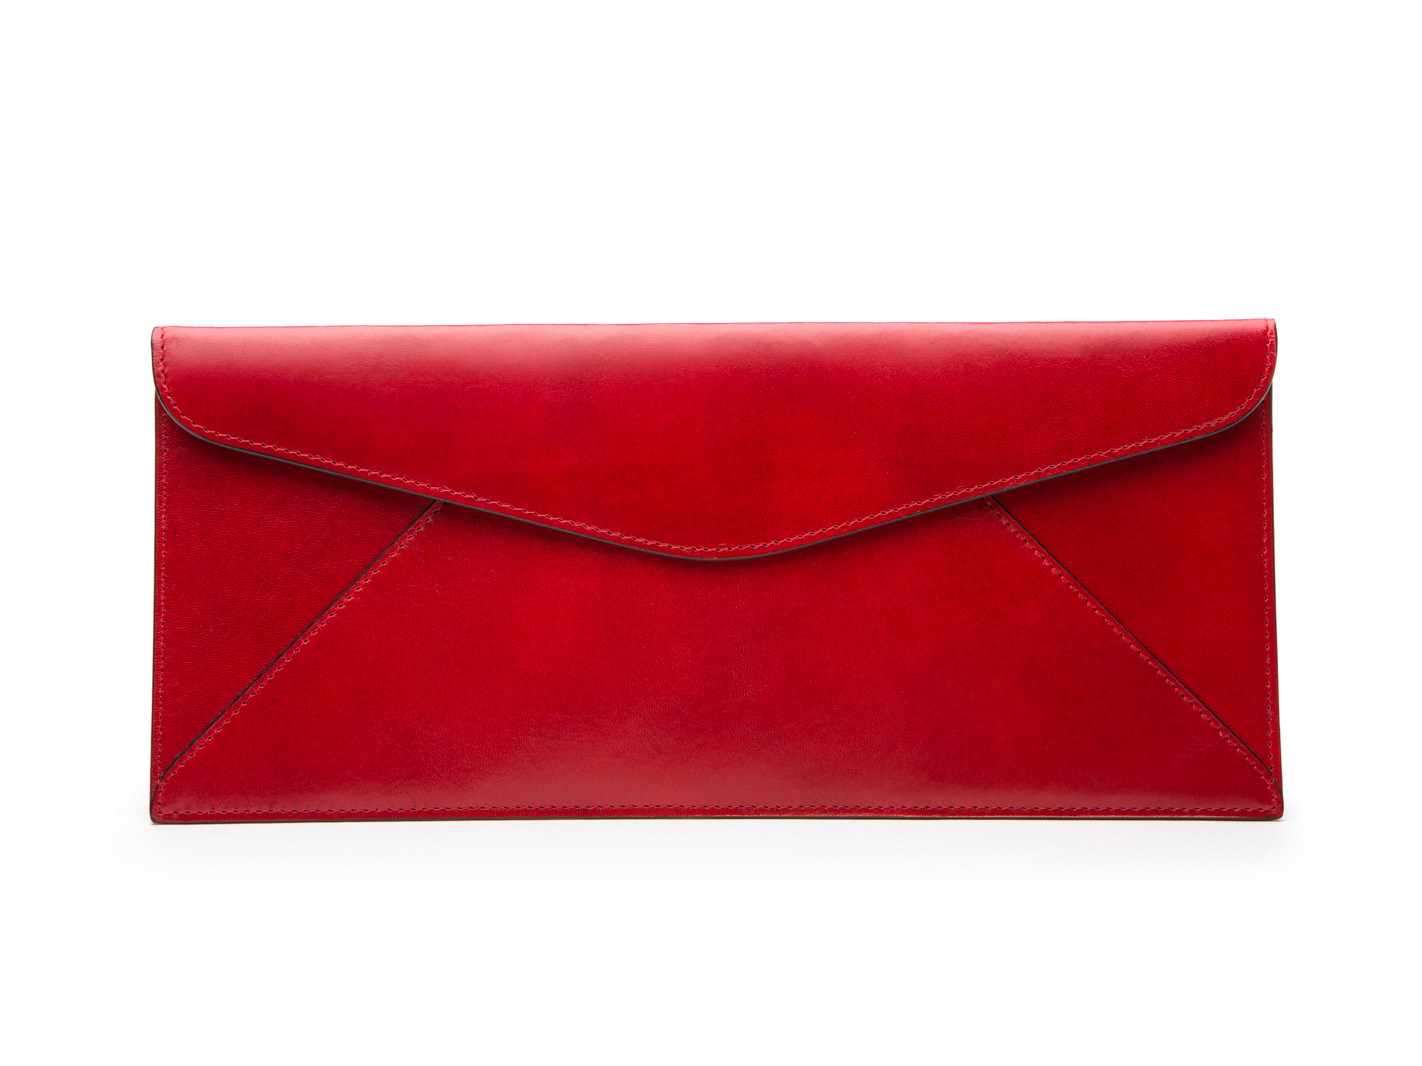 Leather Envelope-24 Brick Red - 24 Brick Red